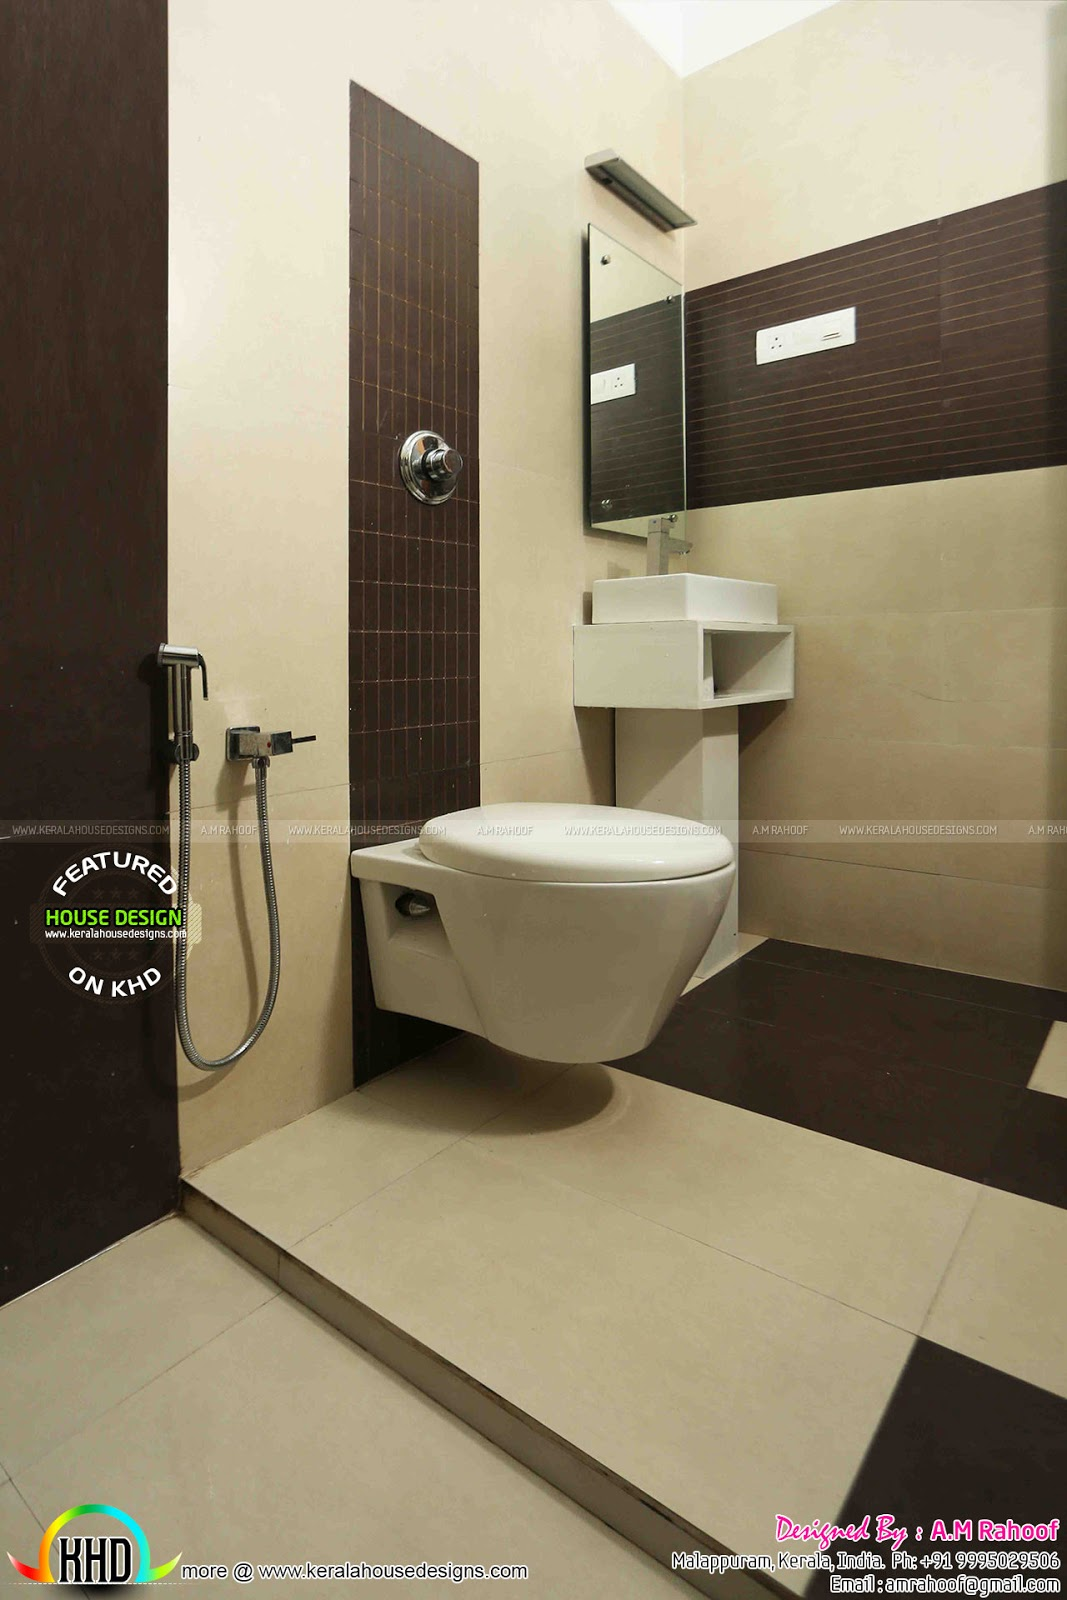 finished house project in kerala bathroom bathroom